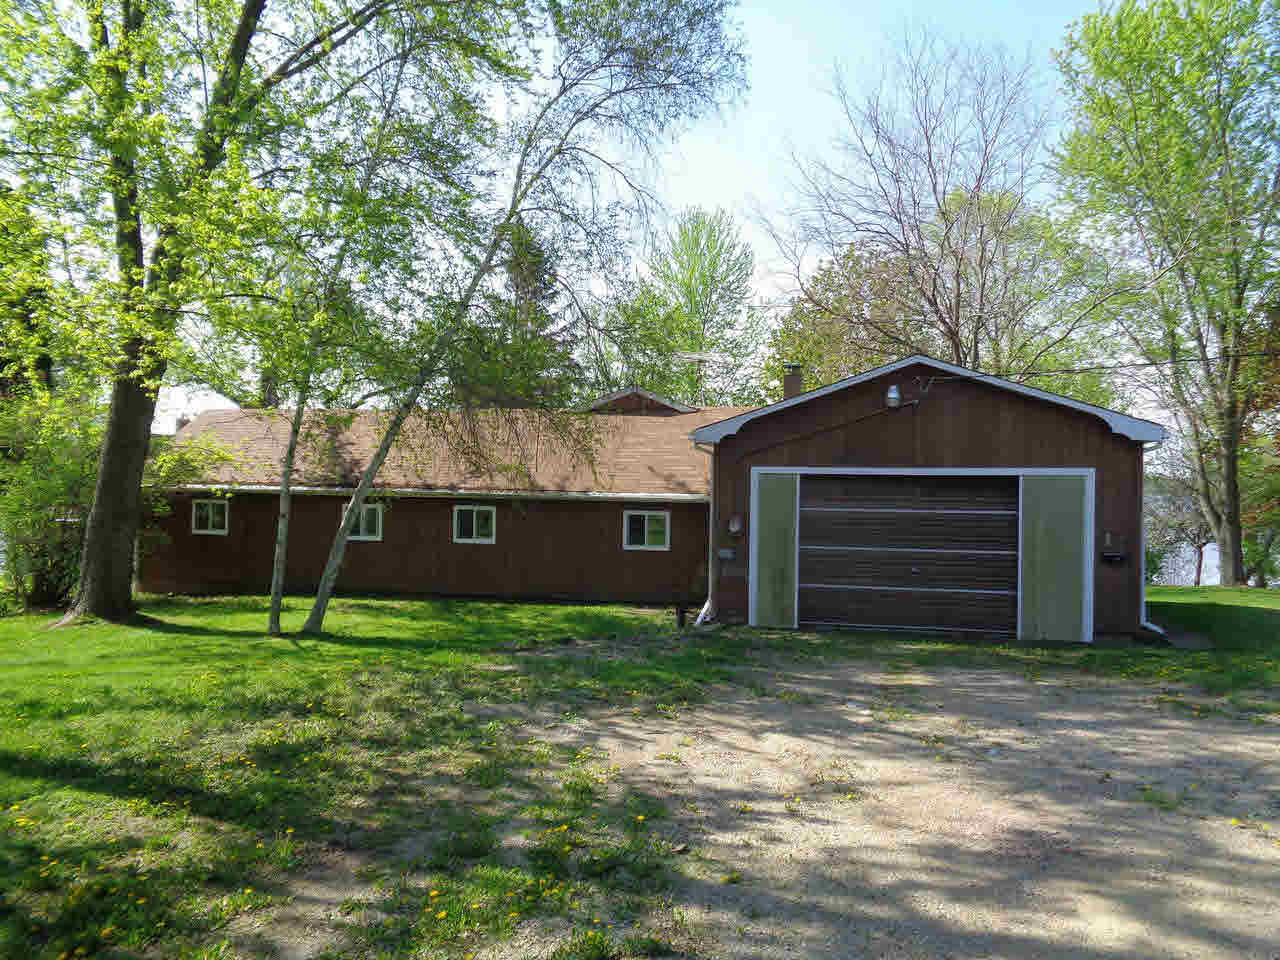 W11363 COUNTY ROAD AW, FOX LAKE, WI 53956